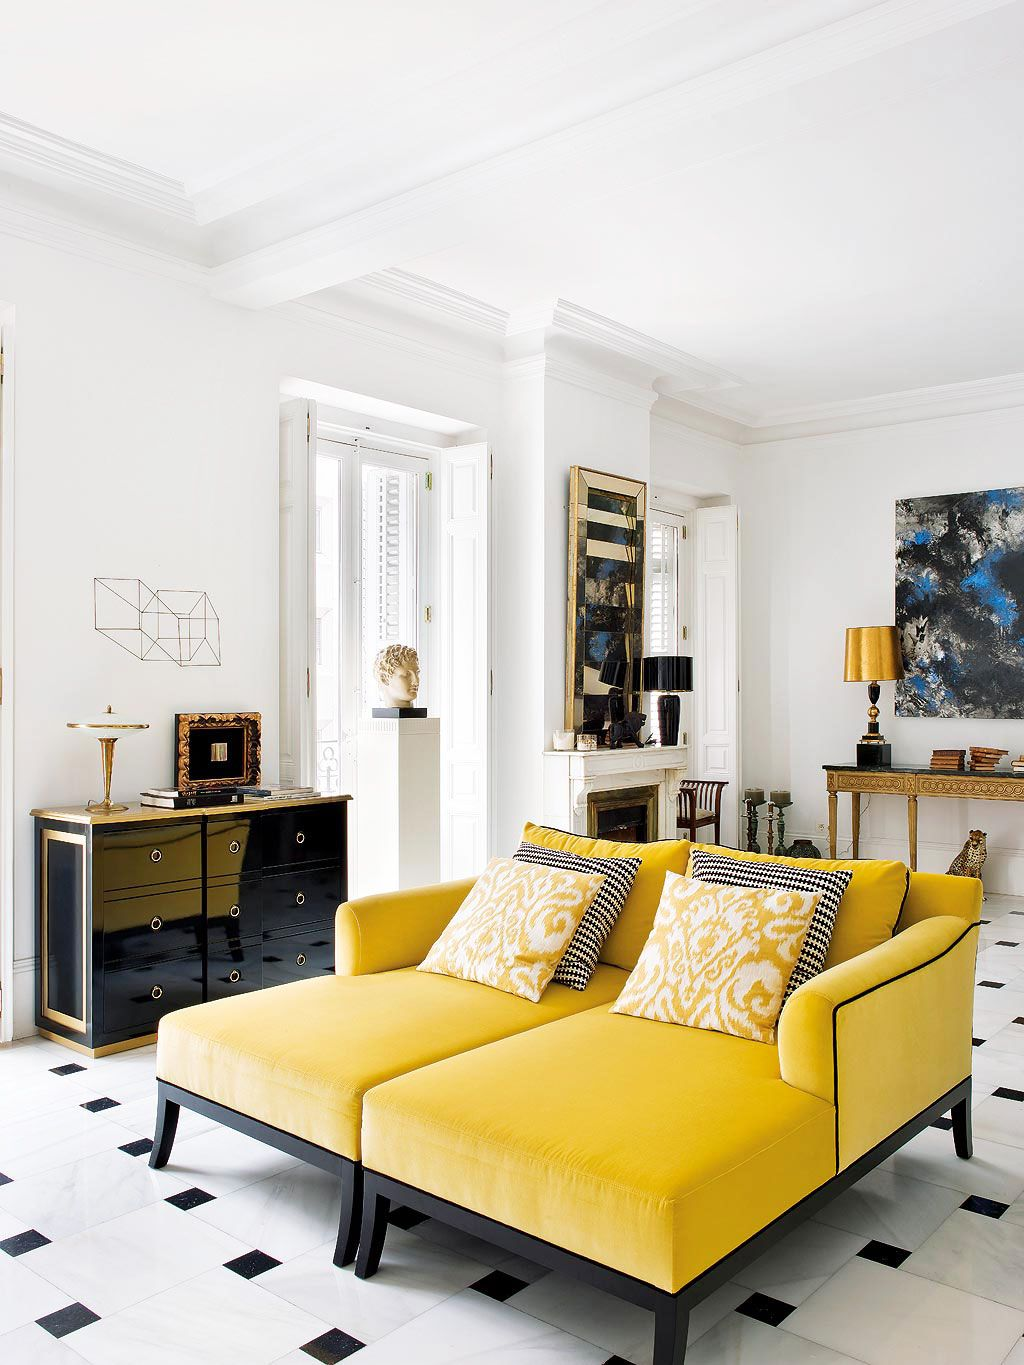 Tour an Eclectic Apartment in Madrid